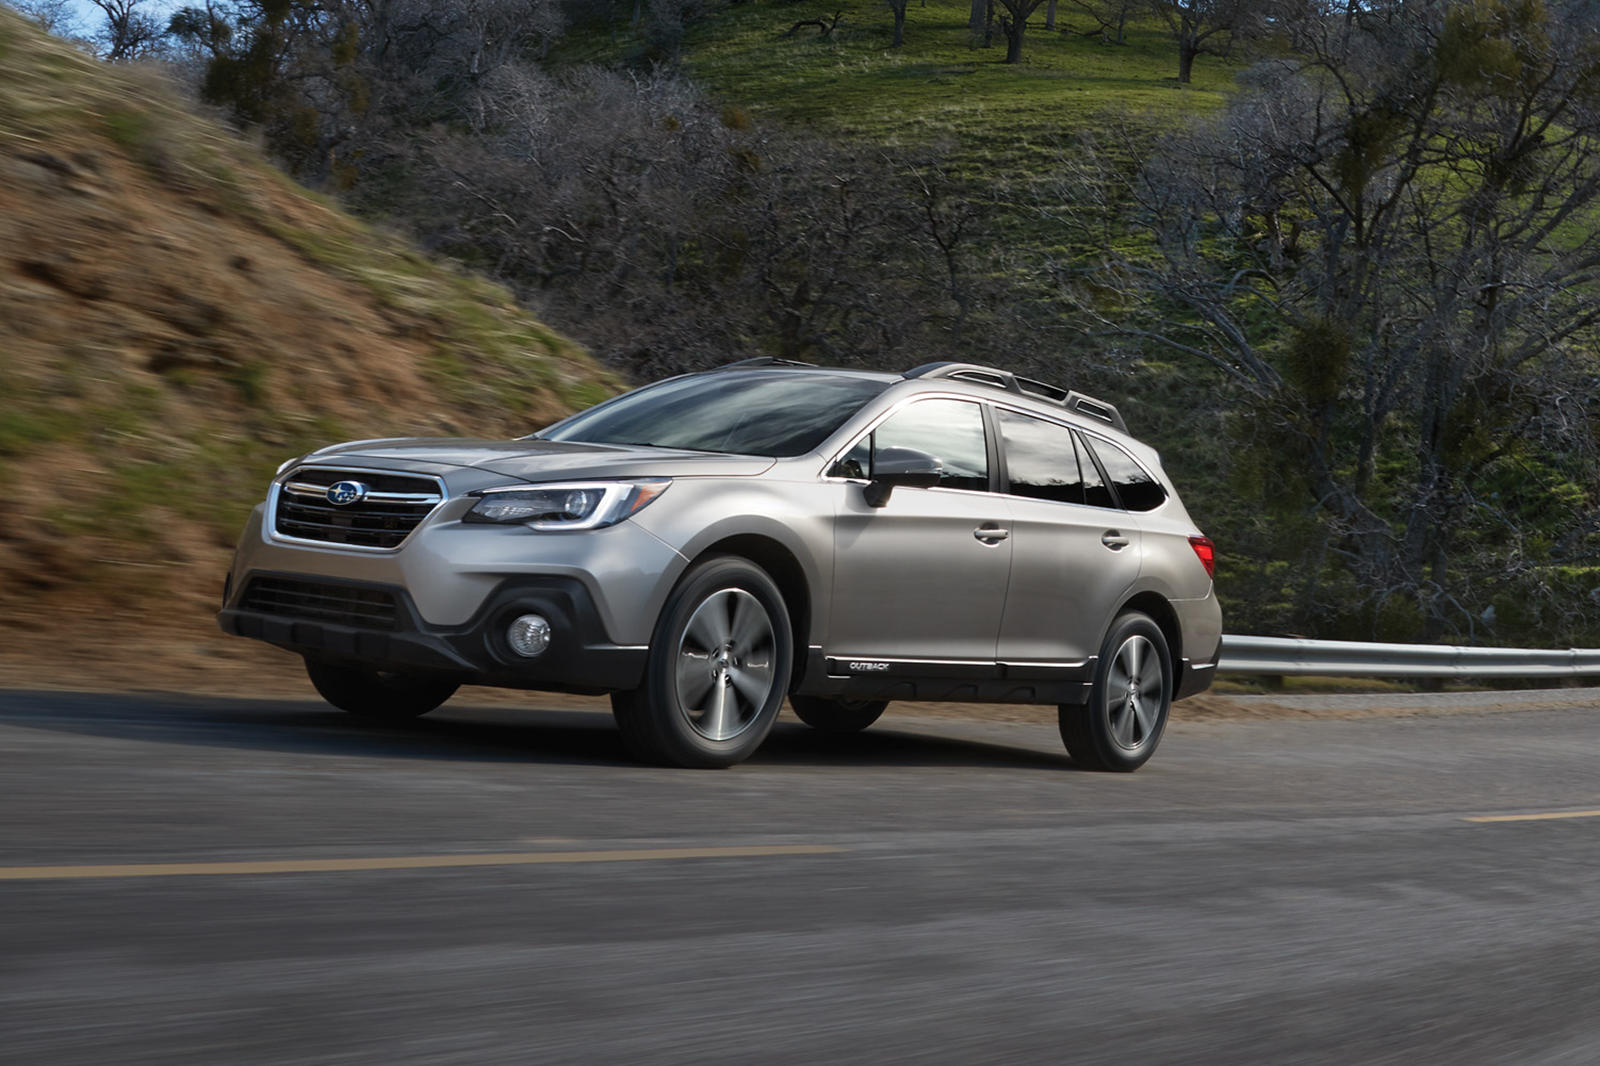 20 Best 2020 Subaru Outback Review